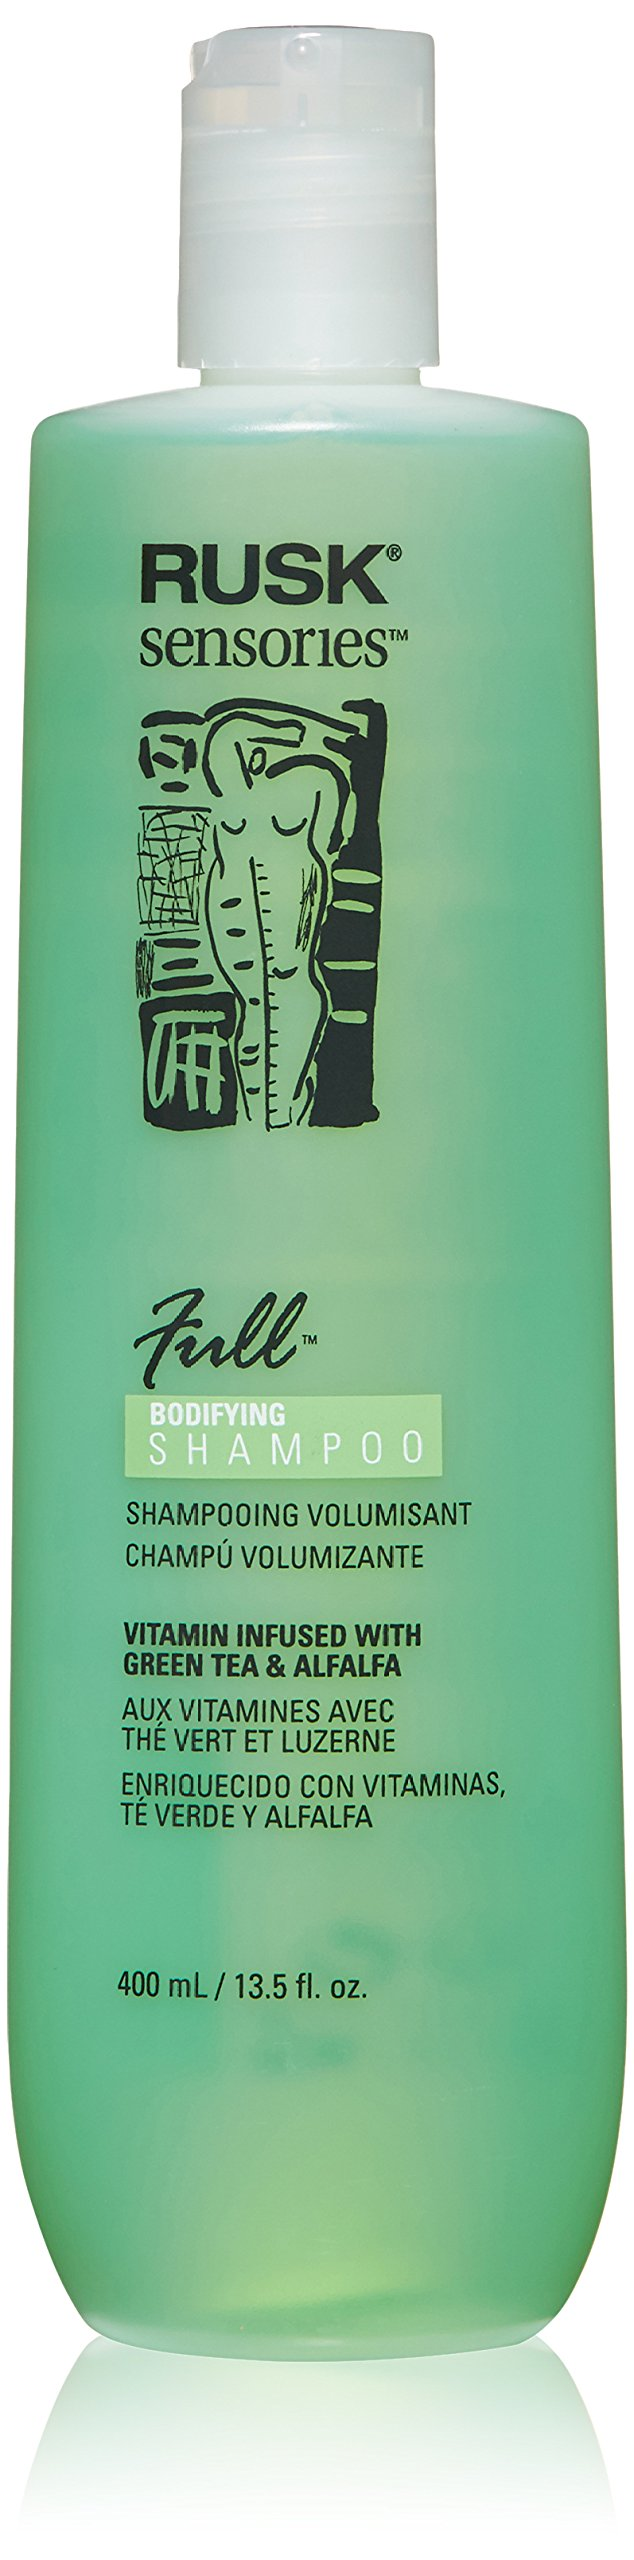 RUSK Sensories Full Green Tea and Alfalfa Bodifying Shampoo, 13.5 fl. oz.